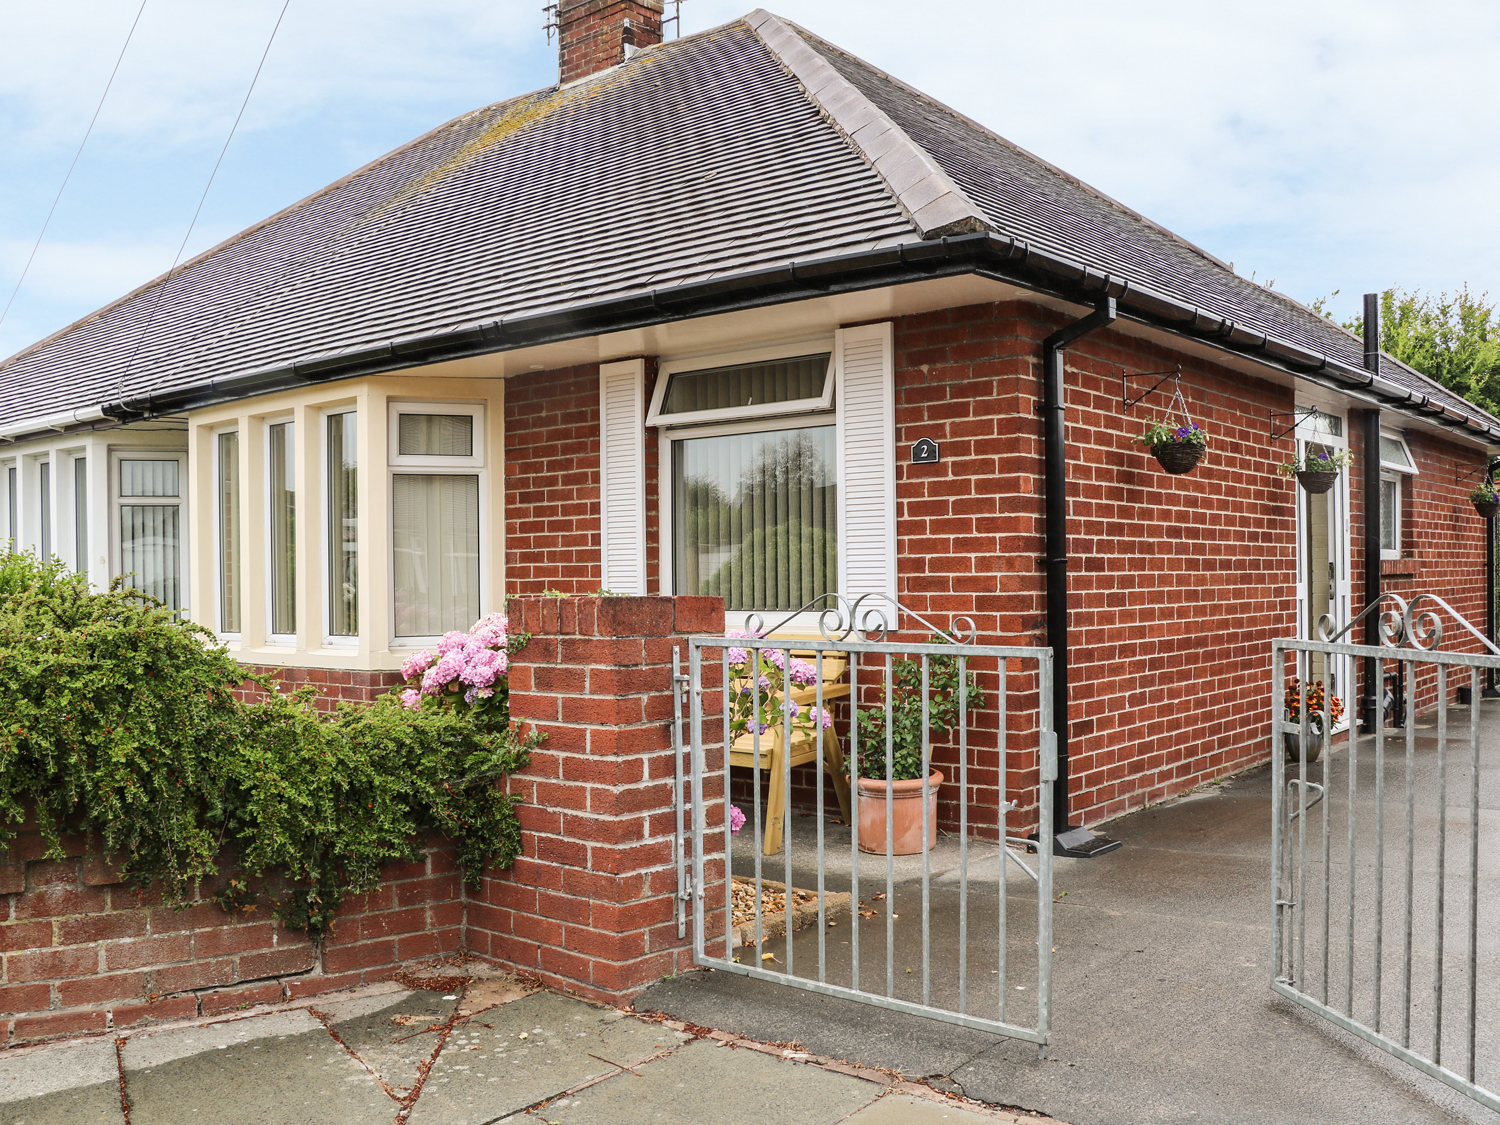 2 bedroom Cottage for rent in Cleveleys